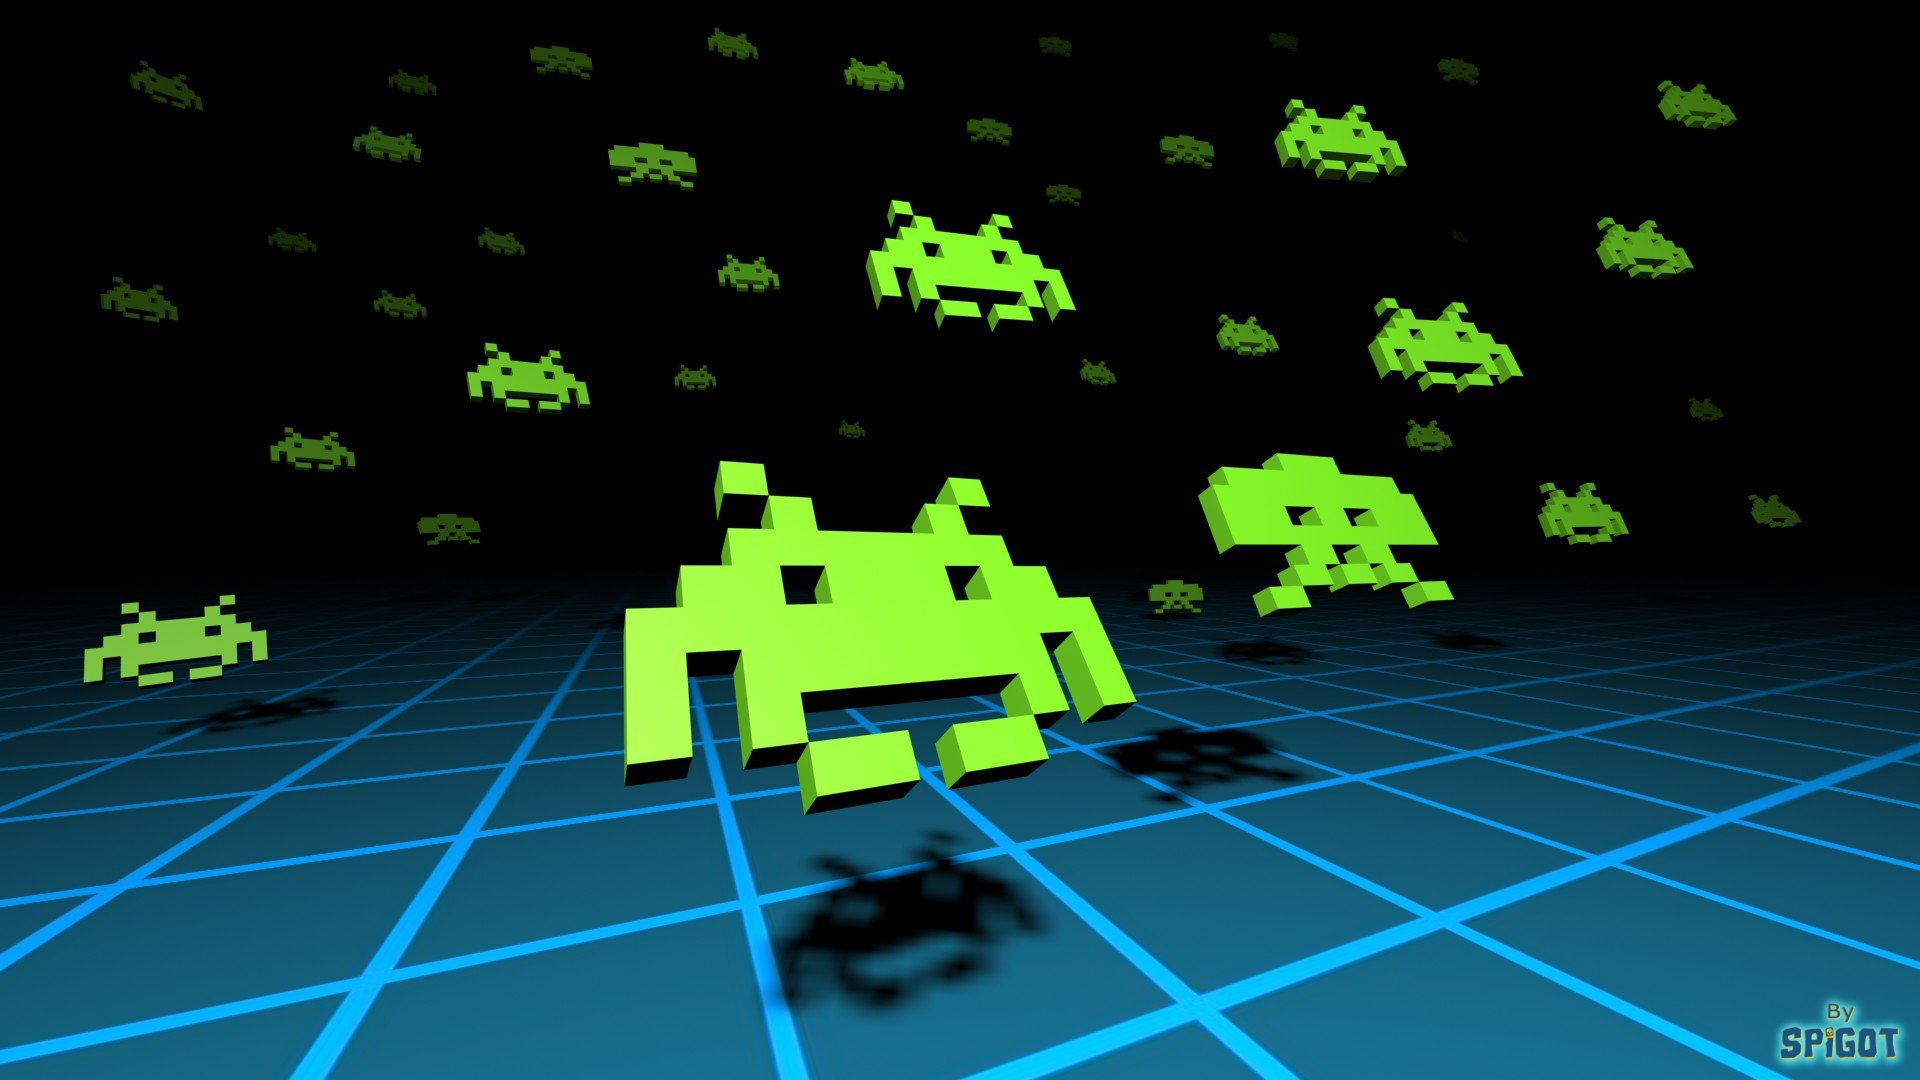 Space Invaders wallpaper - 178841